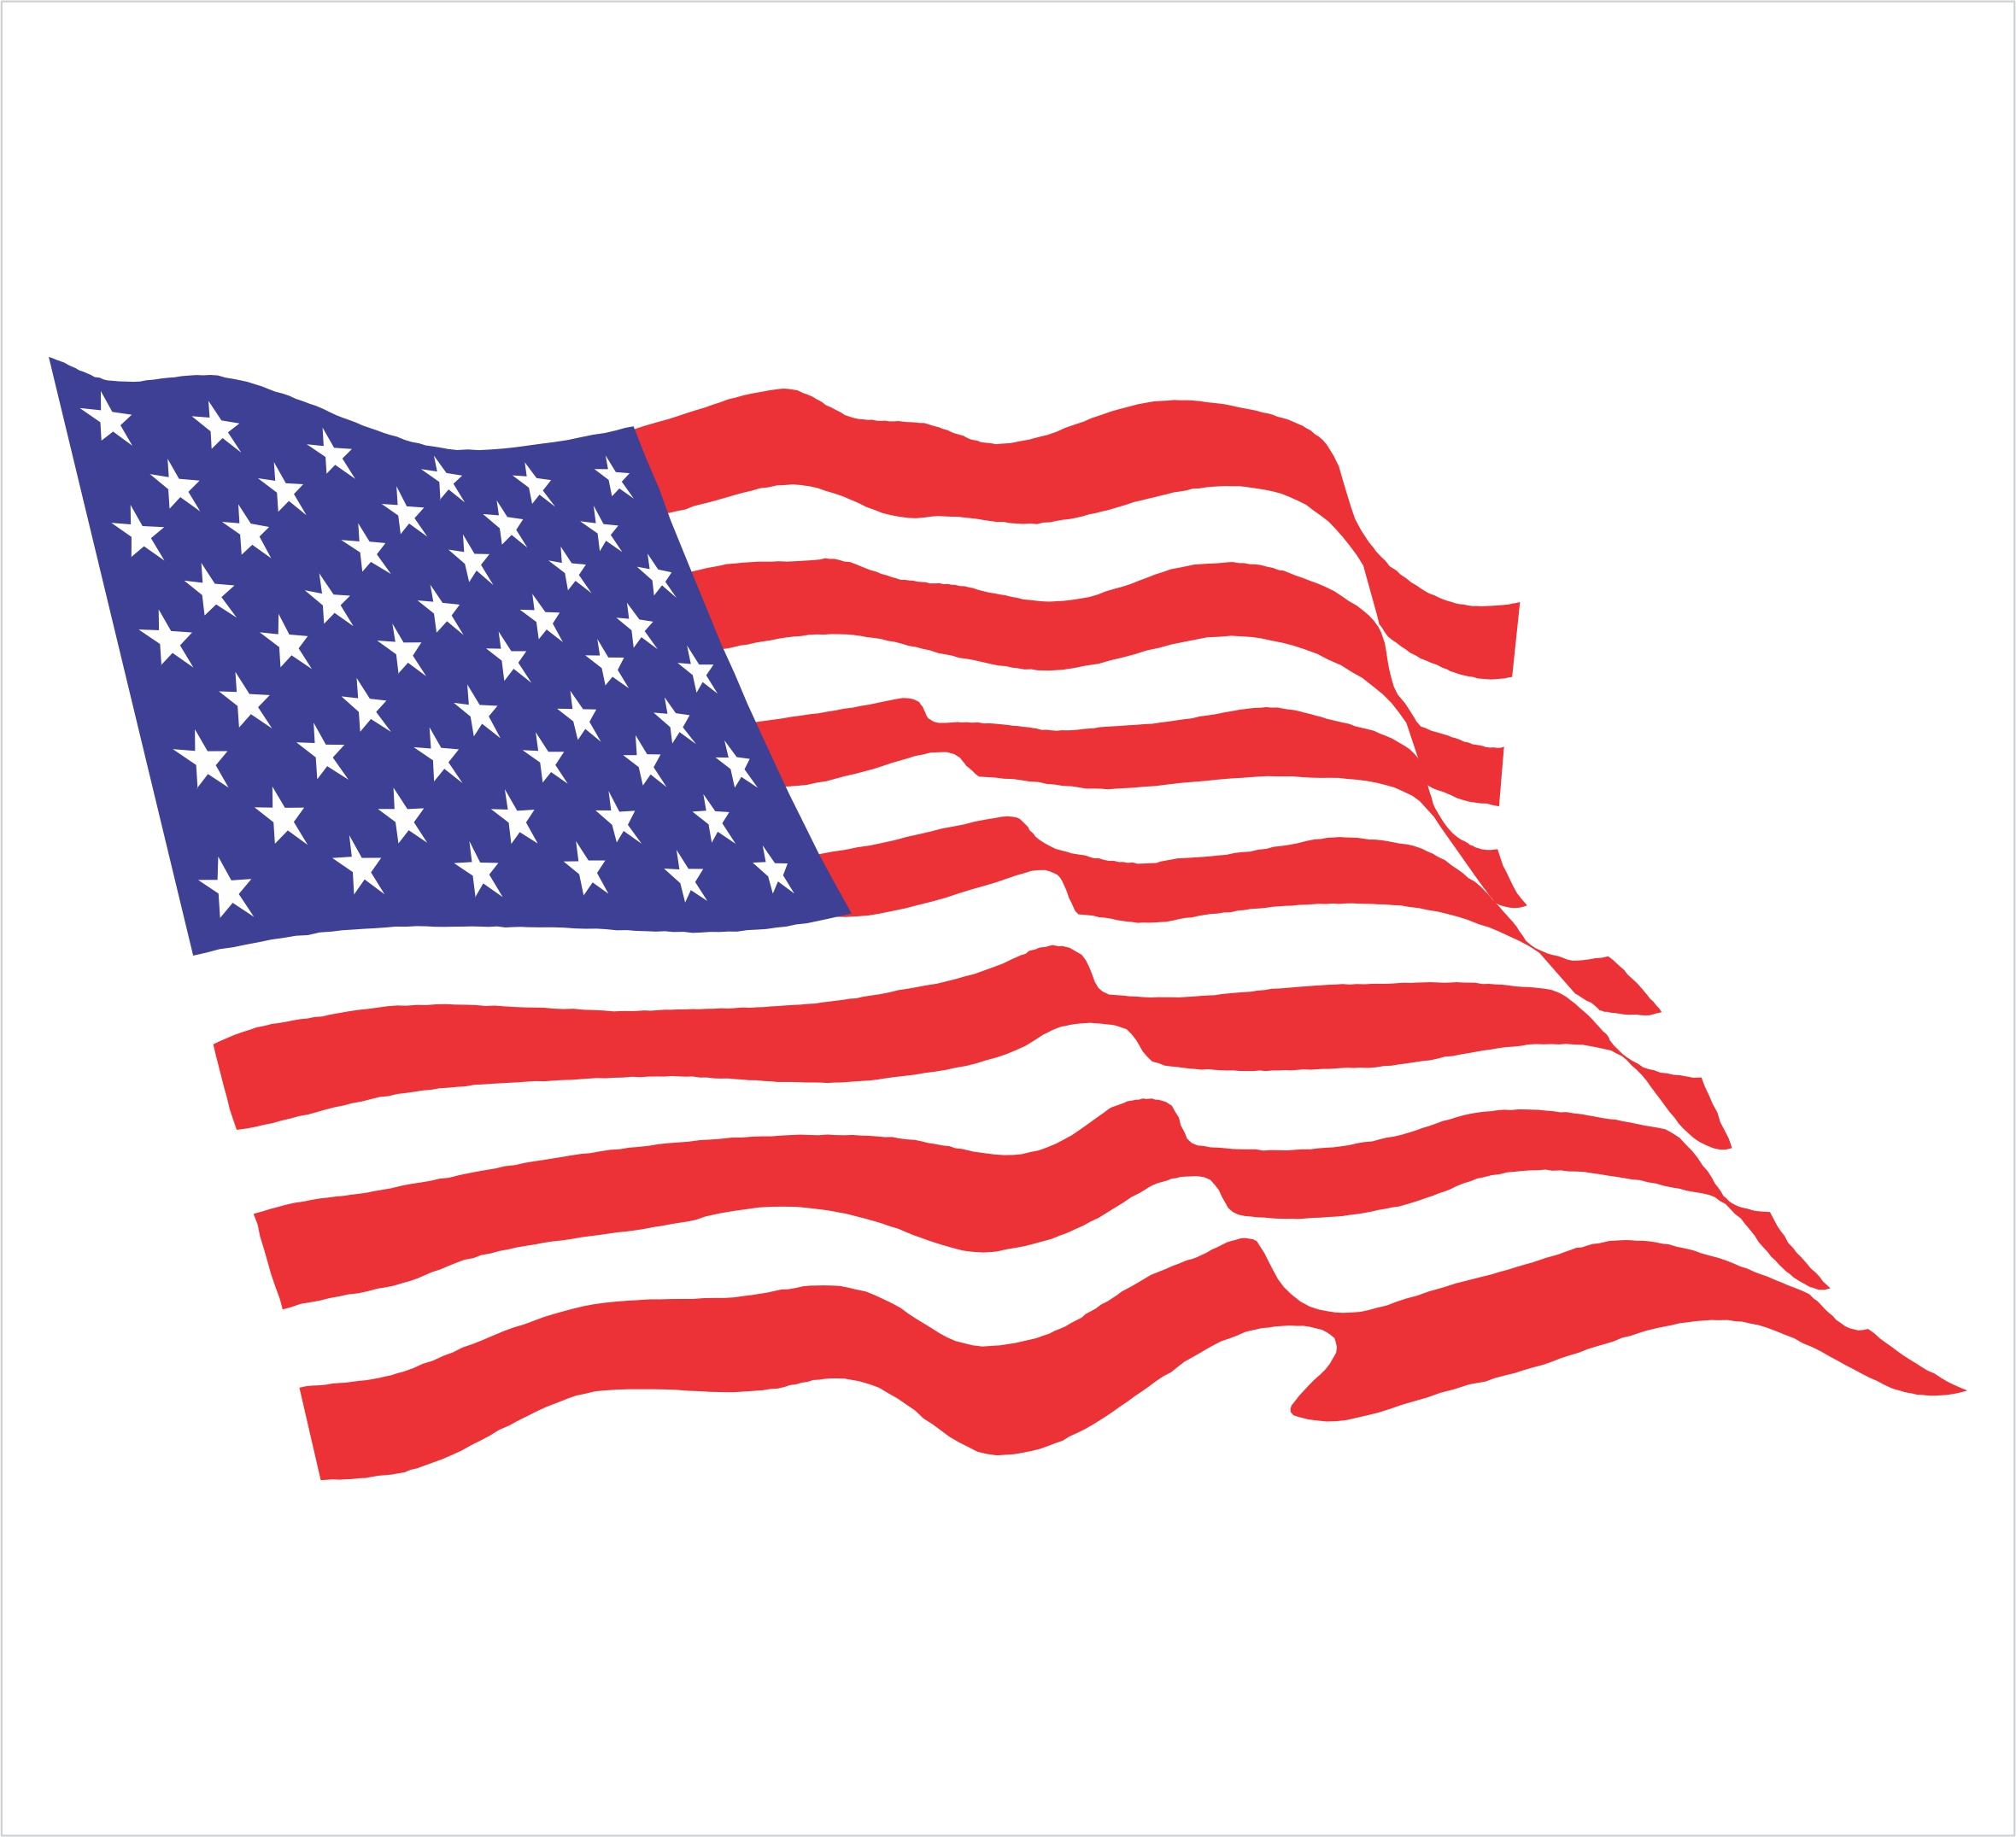 Waving american flag clipart png stock Free Waving Flag Images, Download Free Clip Art, Free Clip Art on ... png stock